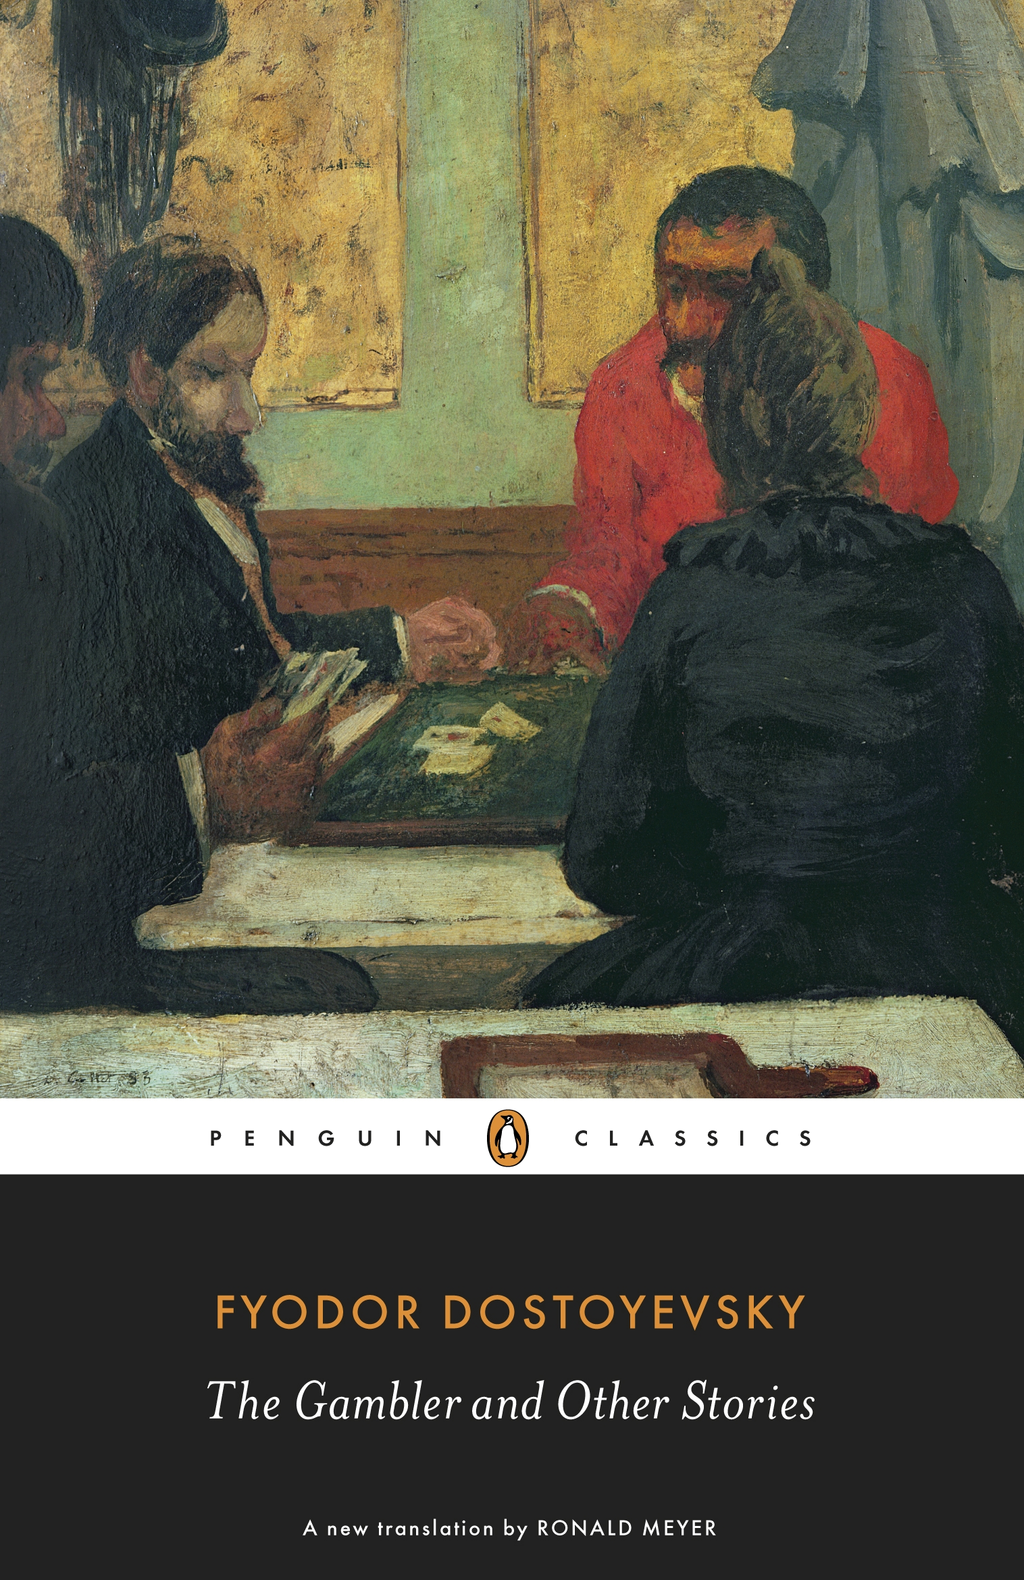 The Gambler and Other Stories By: Fyodor Dostoyevsky